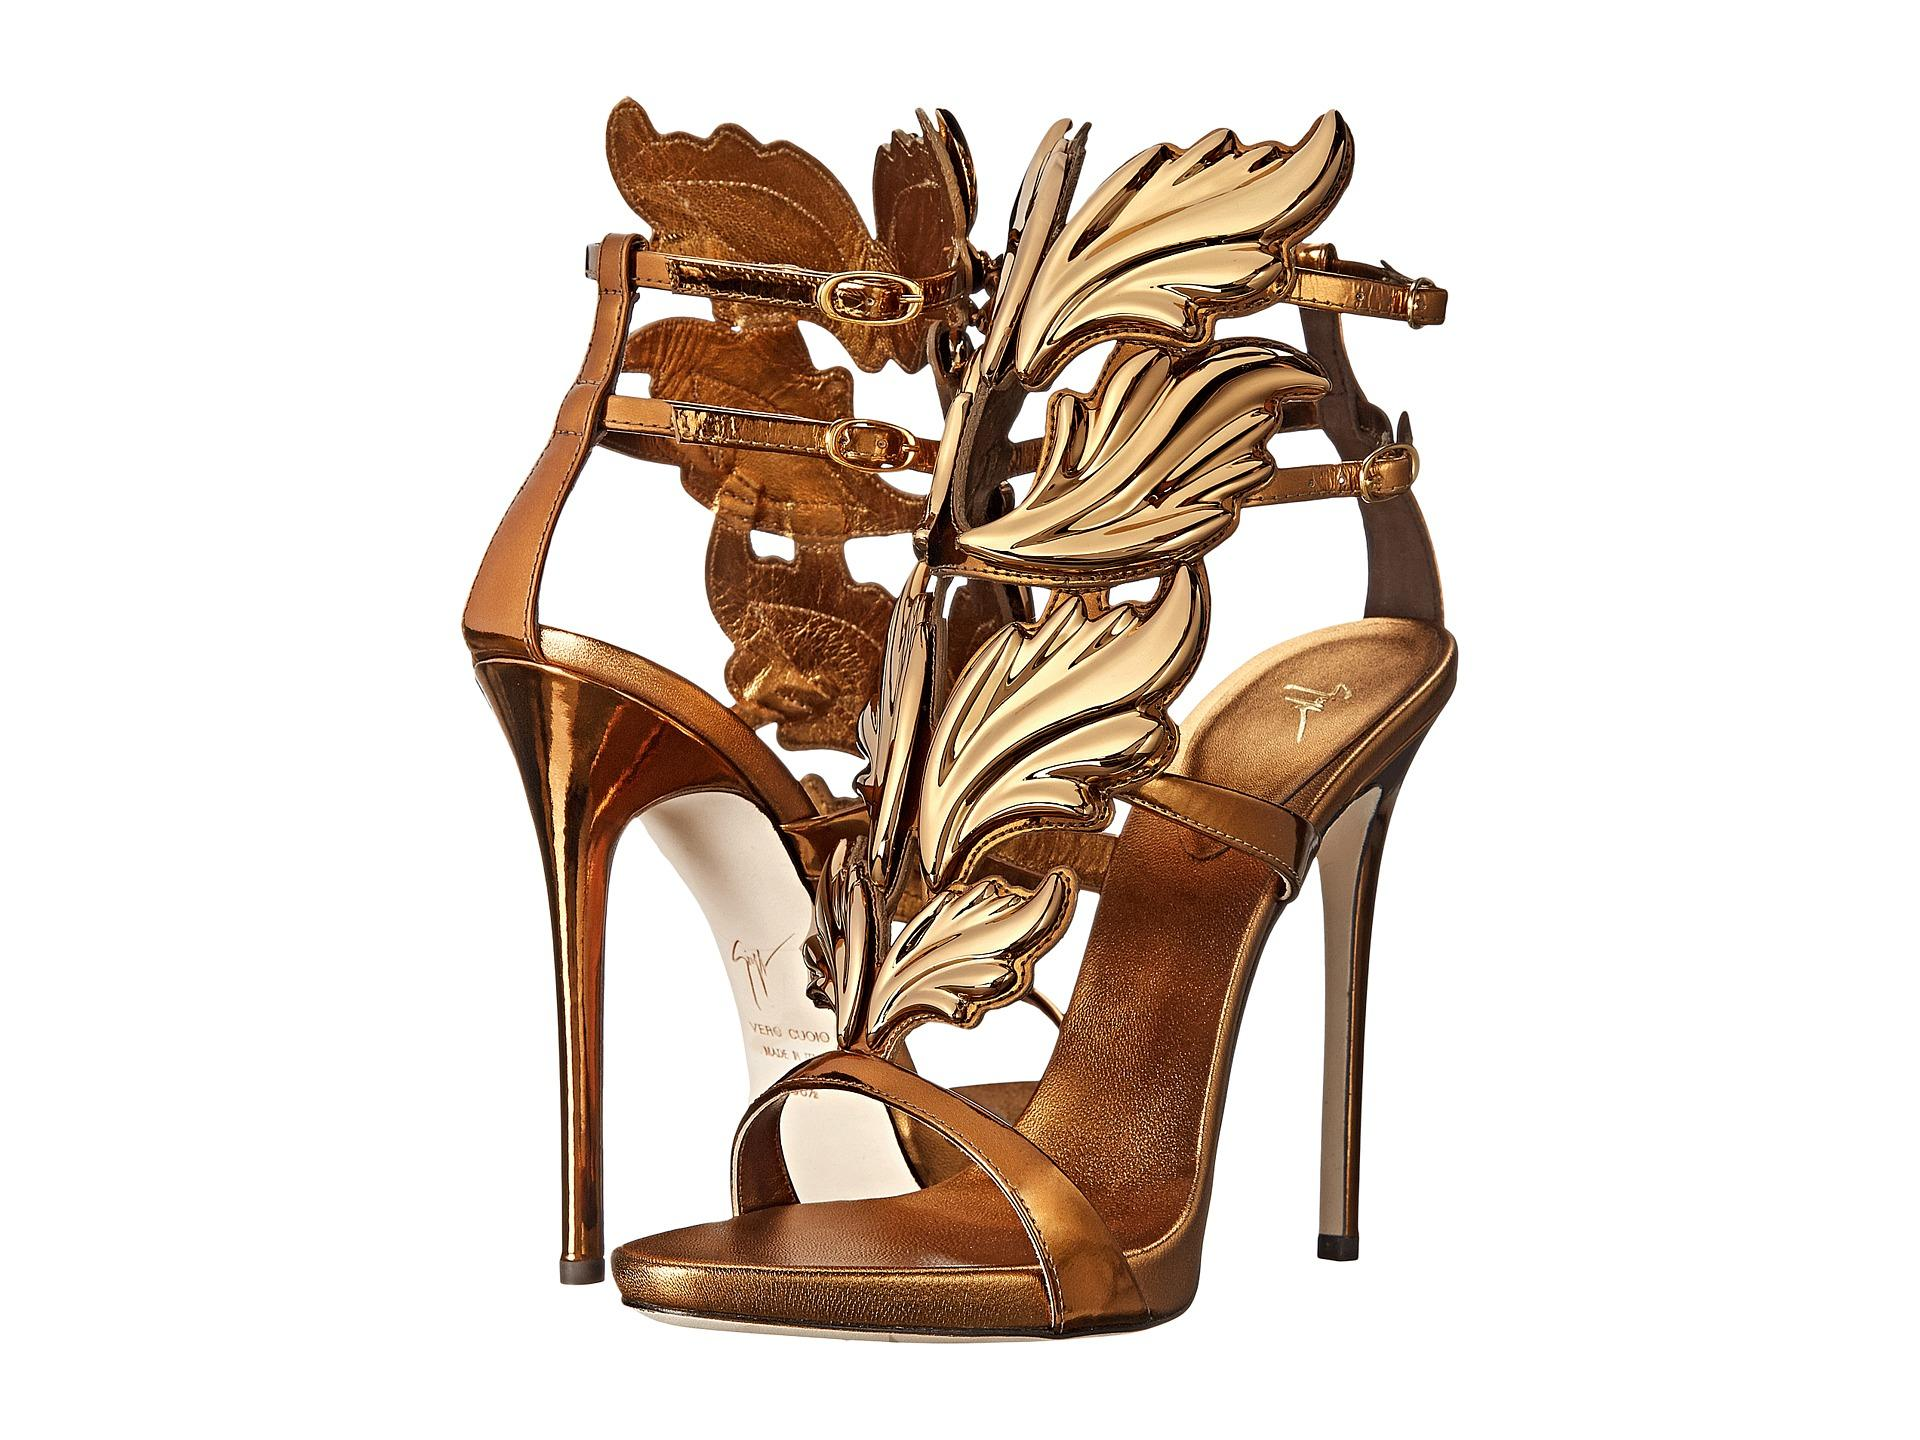 Giuseppe Zanotti Bronze Cruel Summer Sandals Heels 38/ Platforms Size US 8 Regular (M, B)